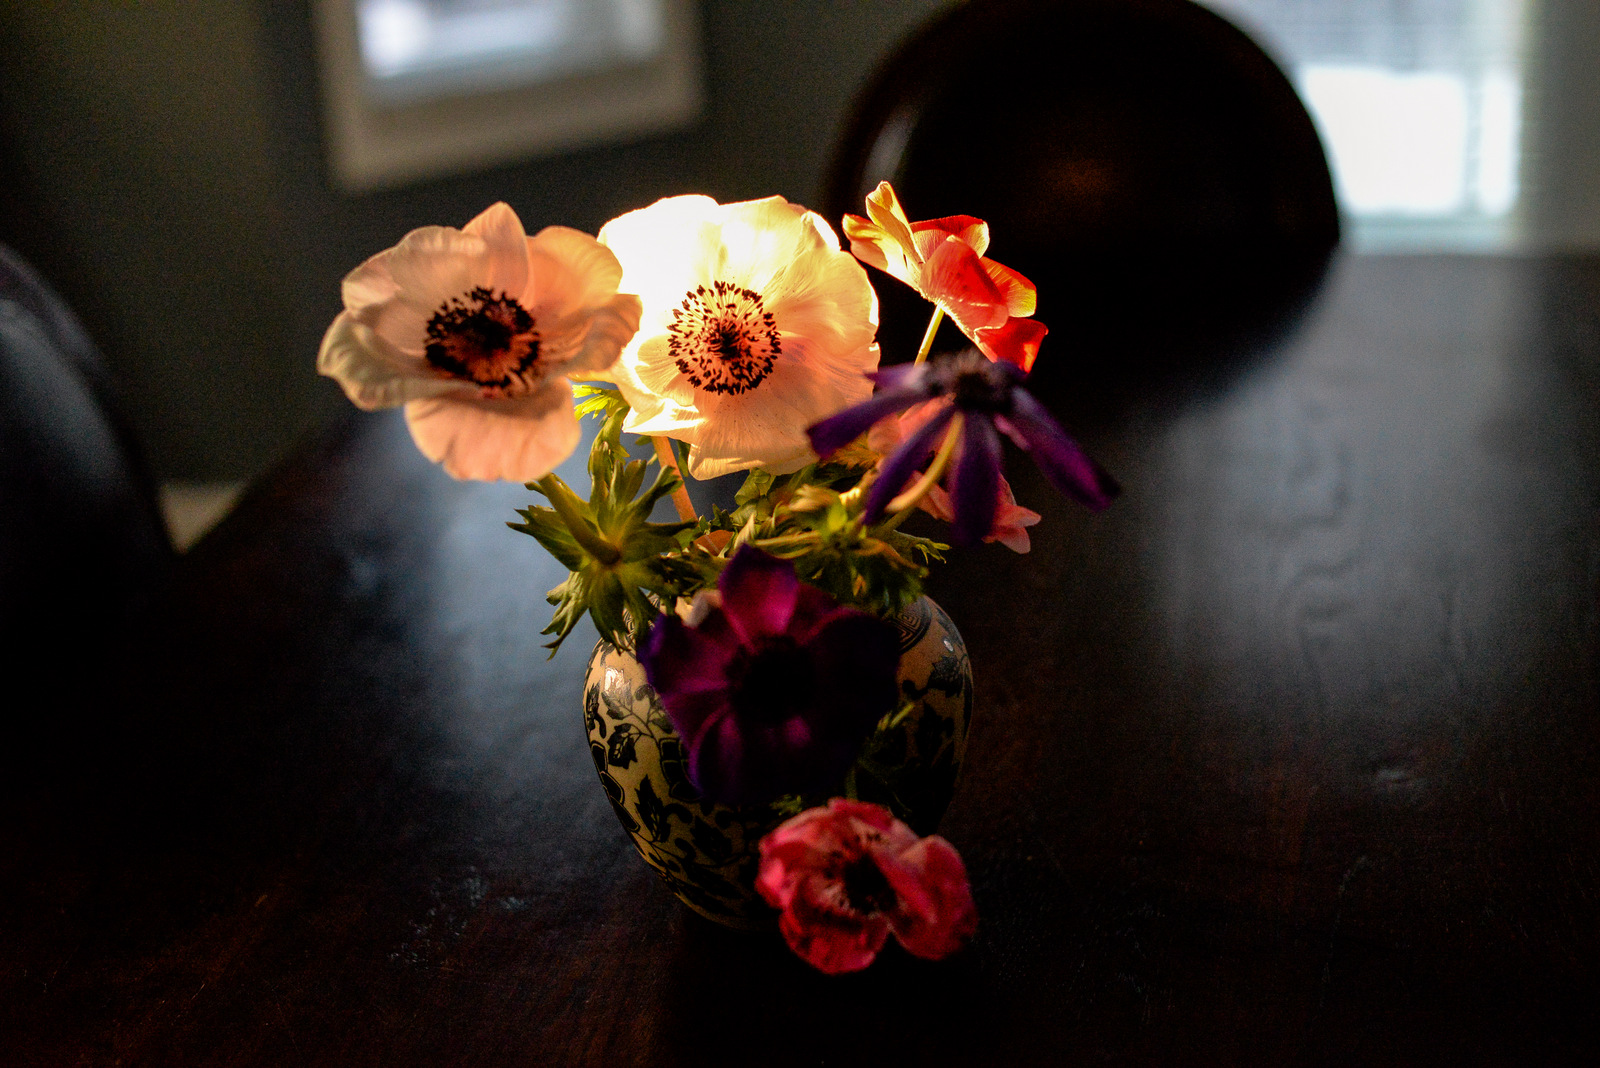 anemones in March light